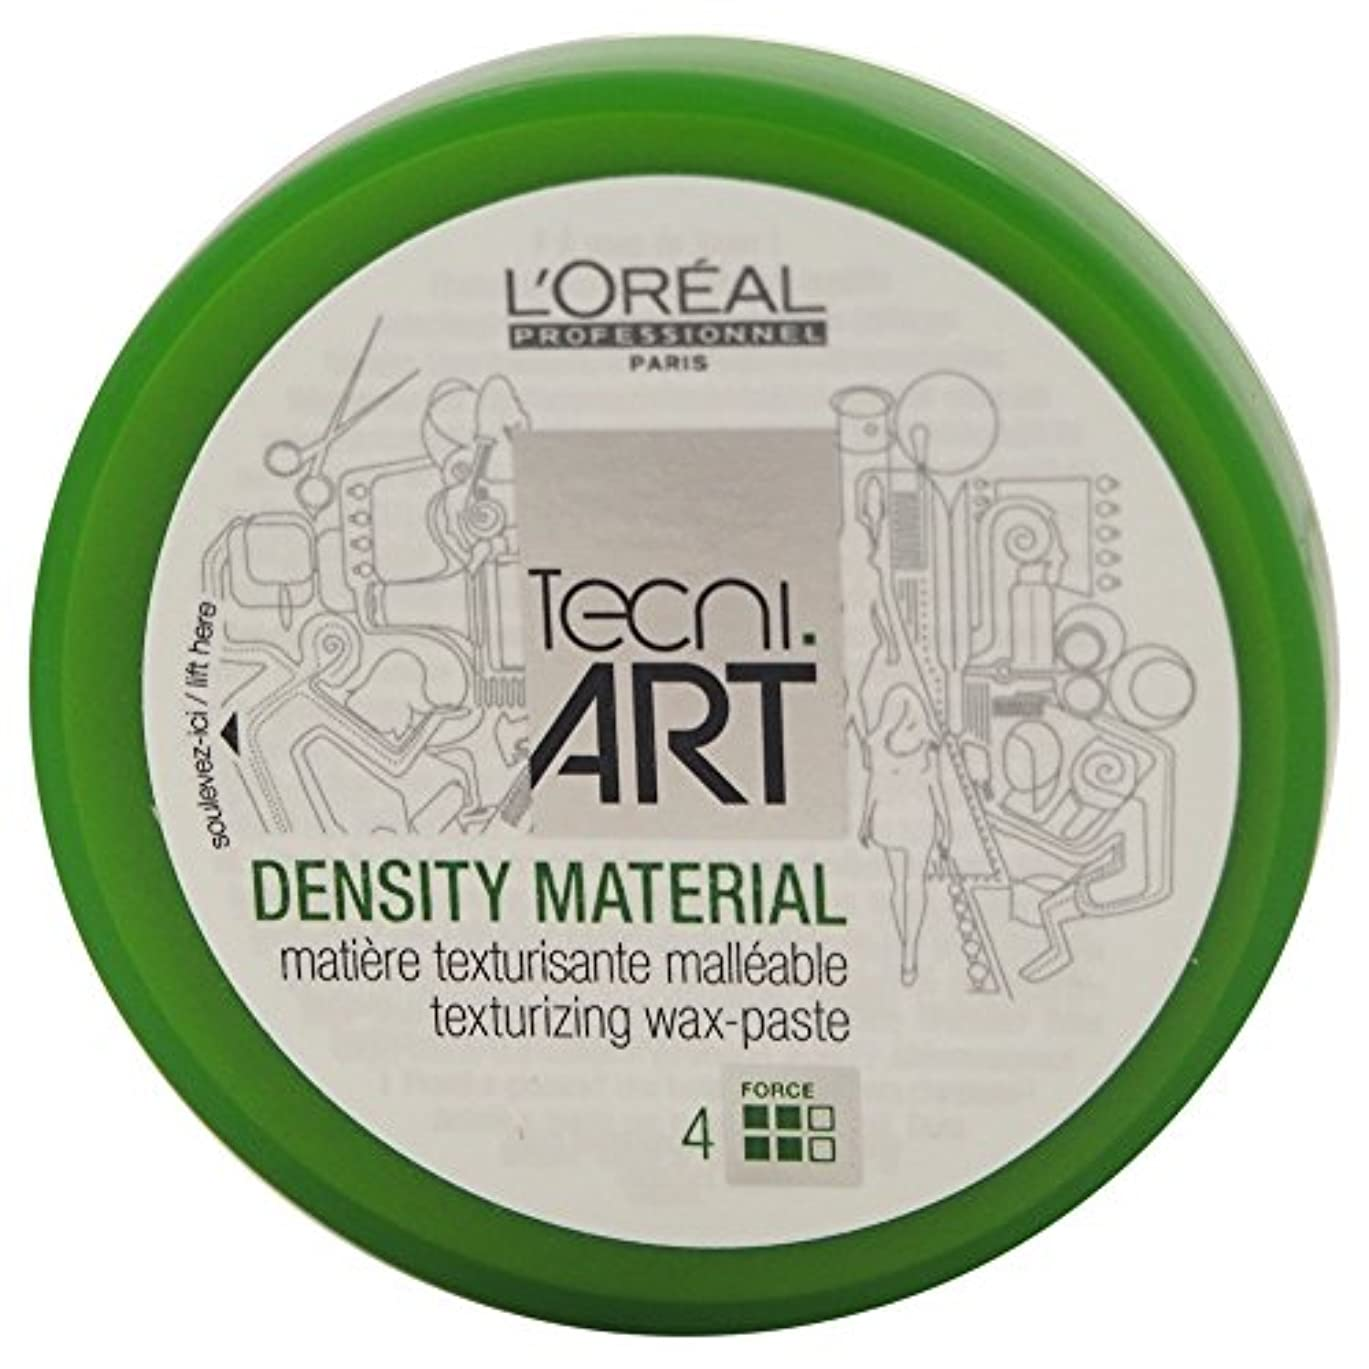 バルブヒゲクジラ失望Loreal Tecni Art Density Material Force 4 Texturizing Wax Paste 100ml [並行輸入品]